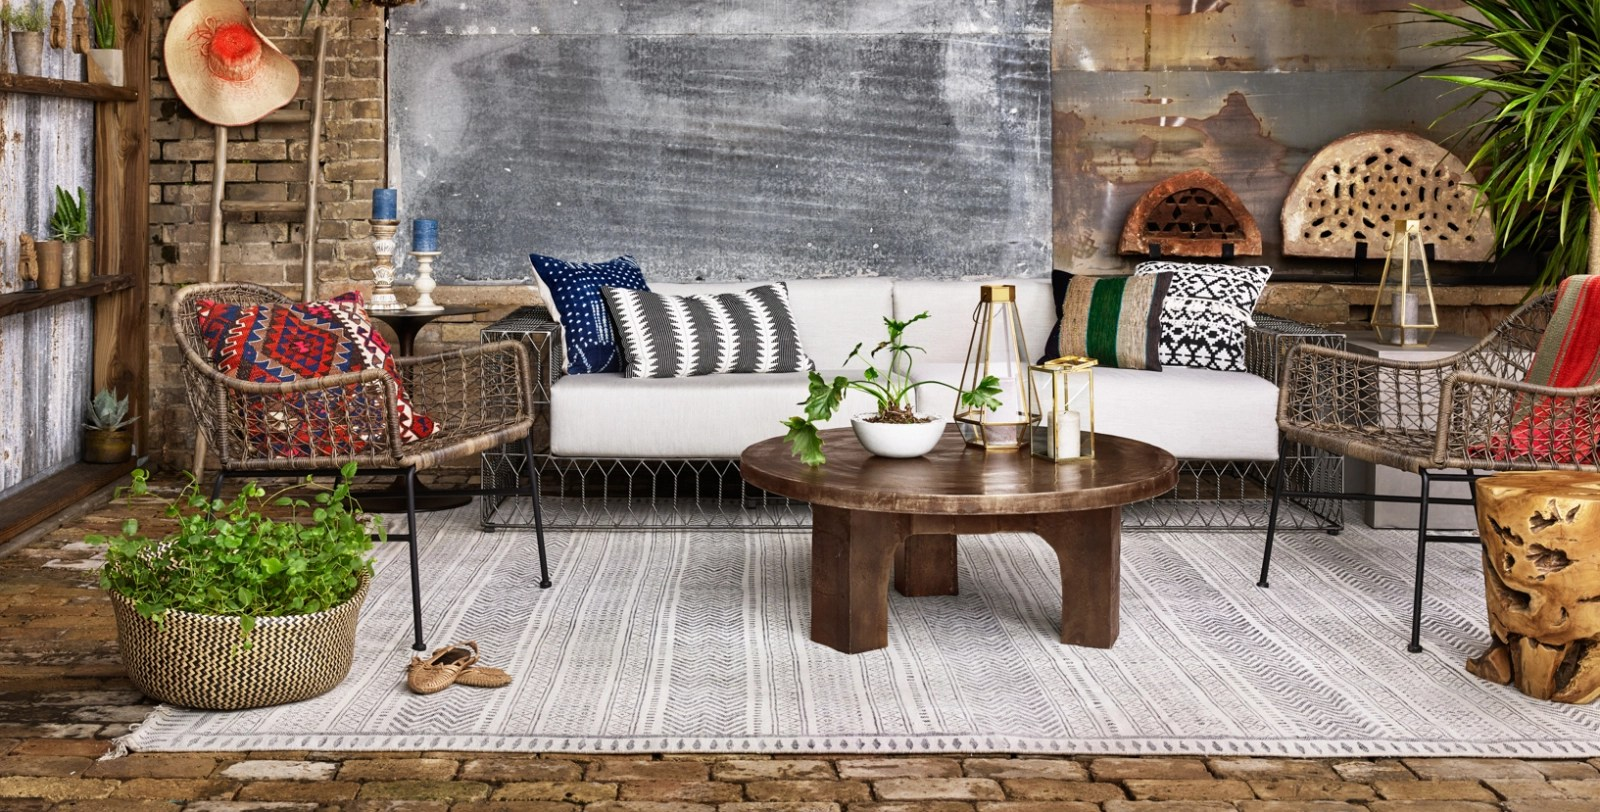 House Furniture Zin Home Eclectic Modern Industrial Style Furniture